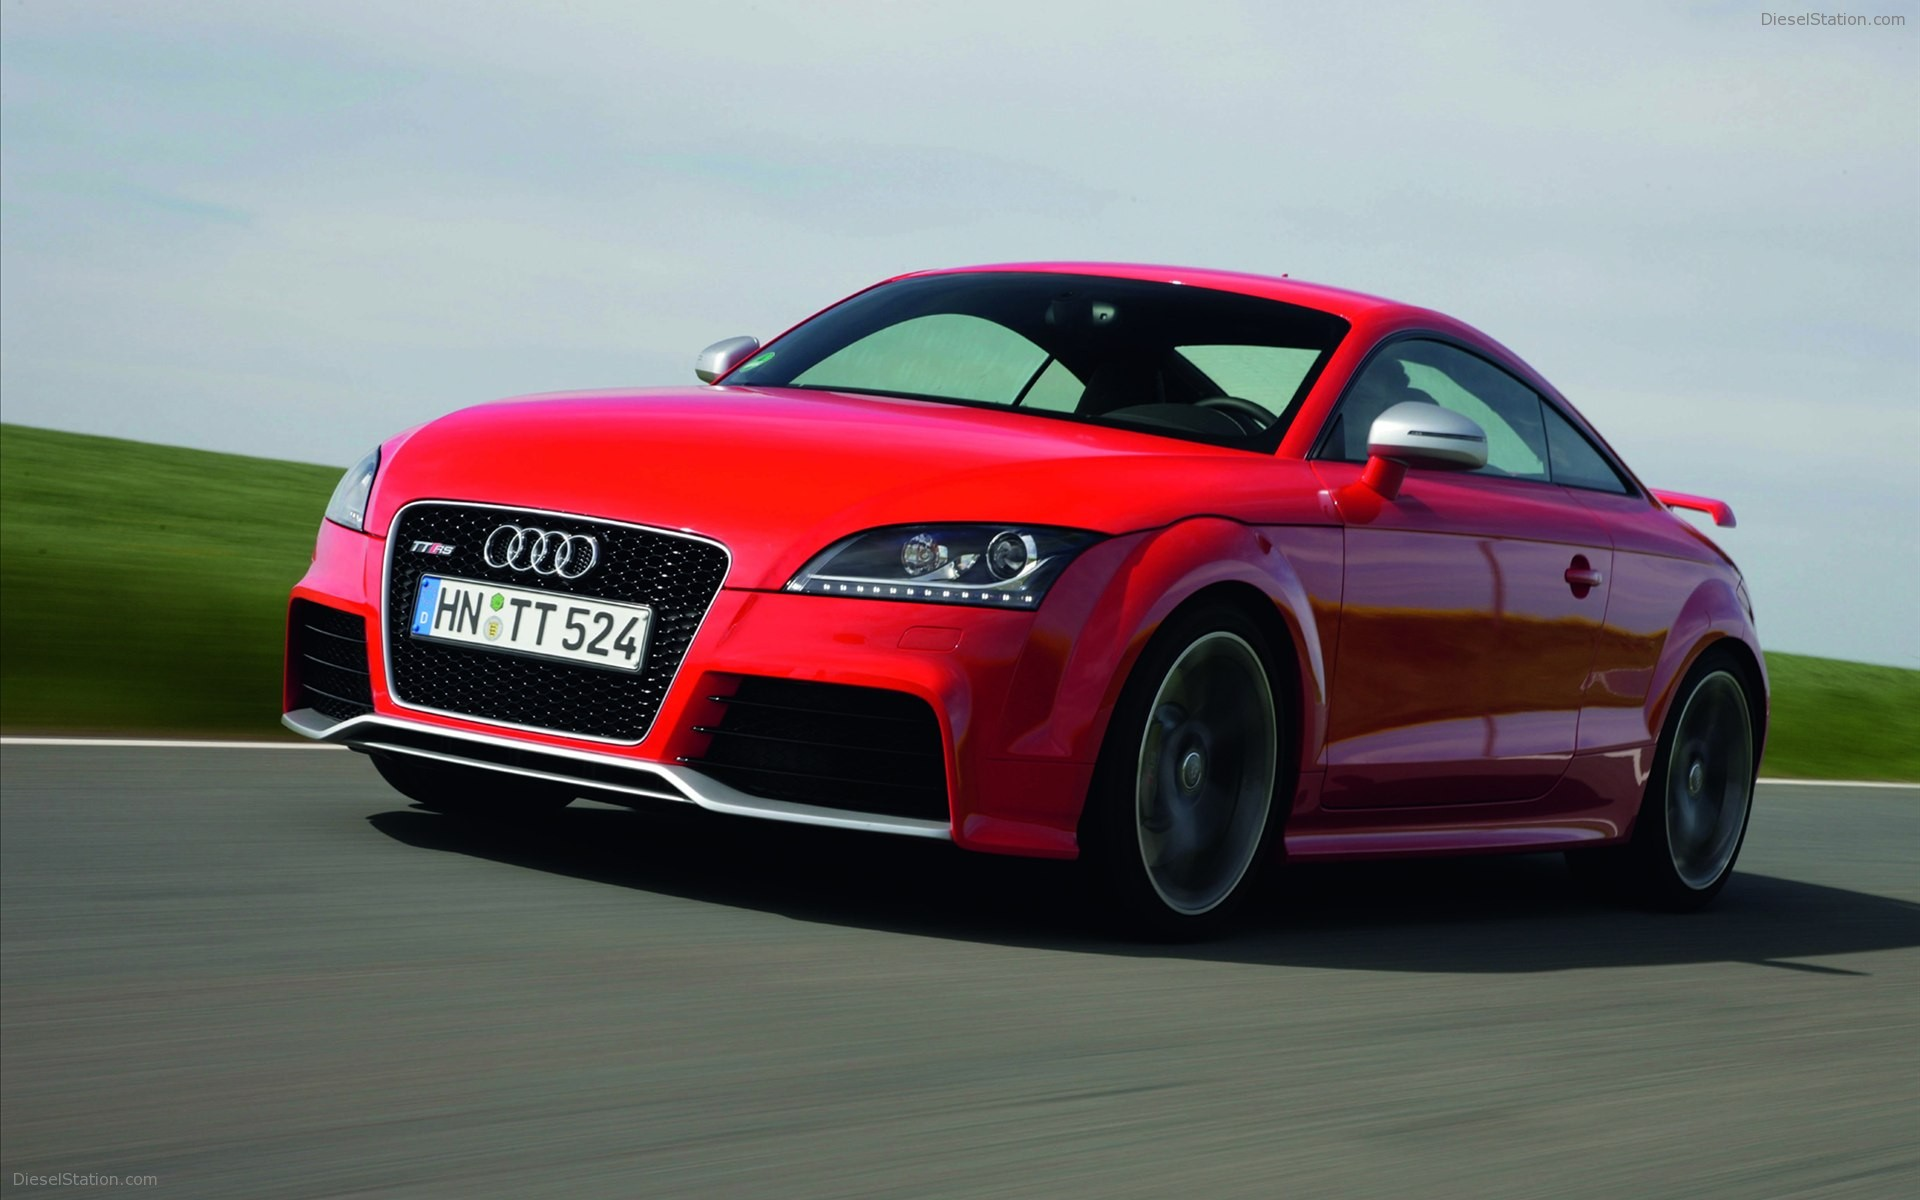 Audi TT RS 2012 Widescreen Exotic Car Wallpaper #69 of 158 ...